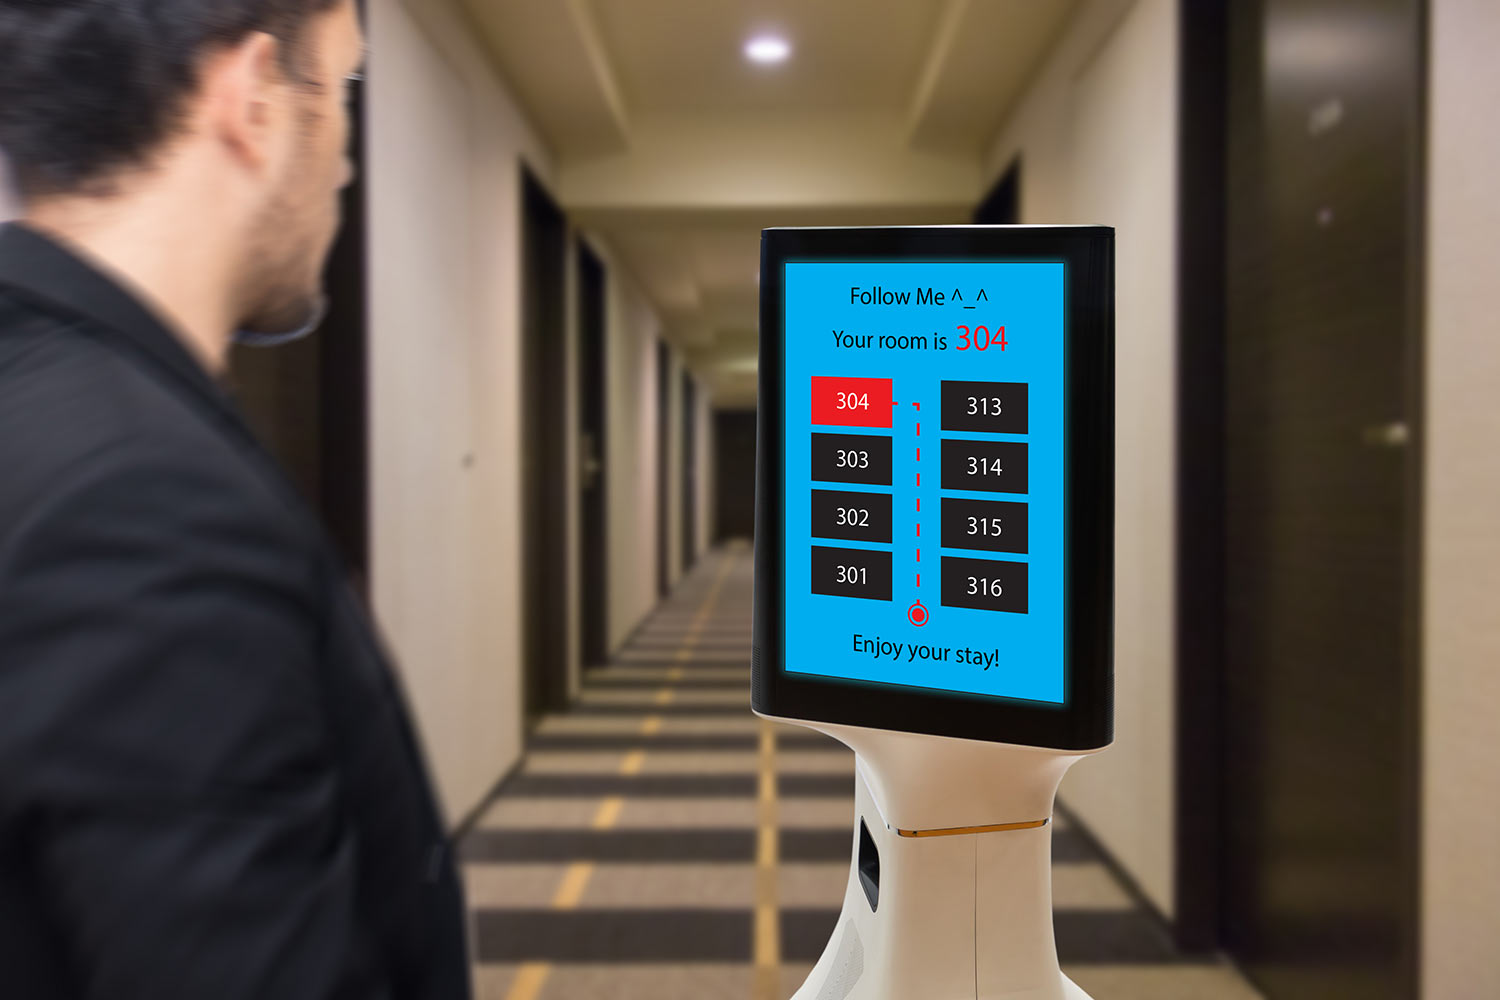 Technology reshaping the hospitality industry